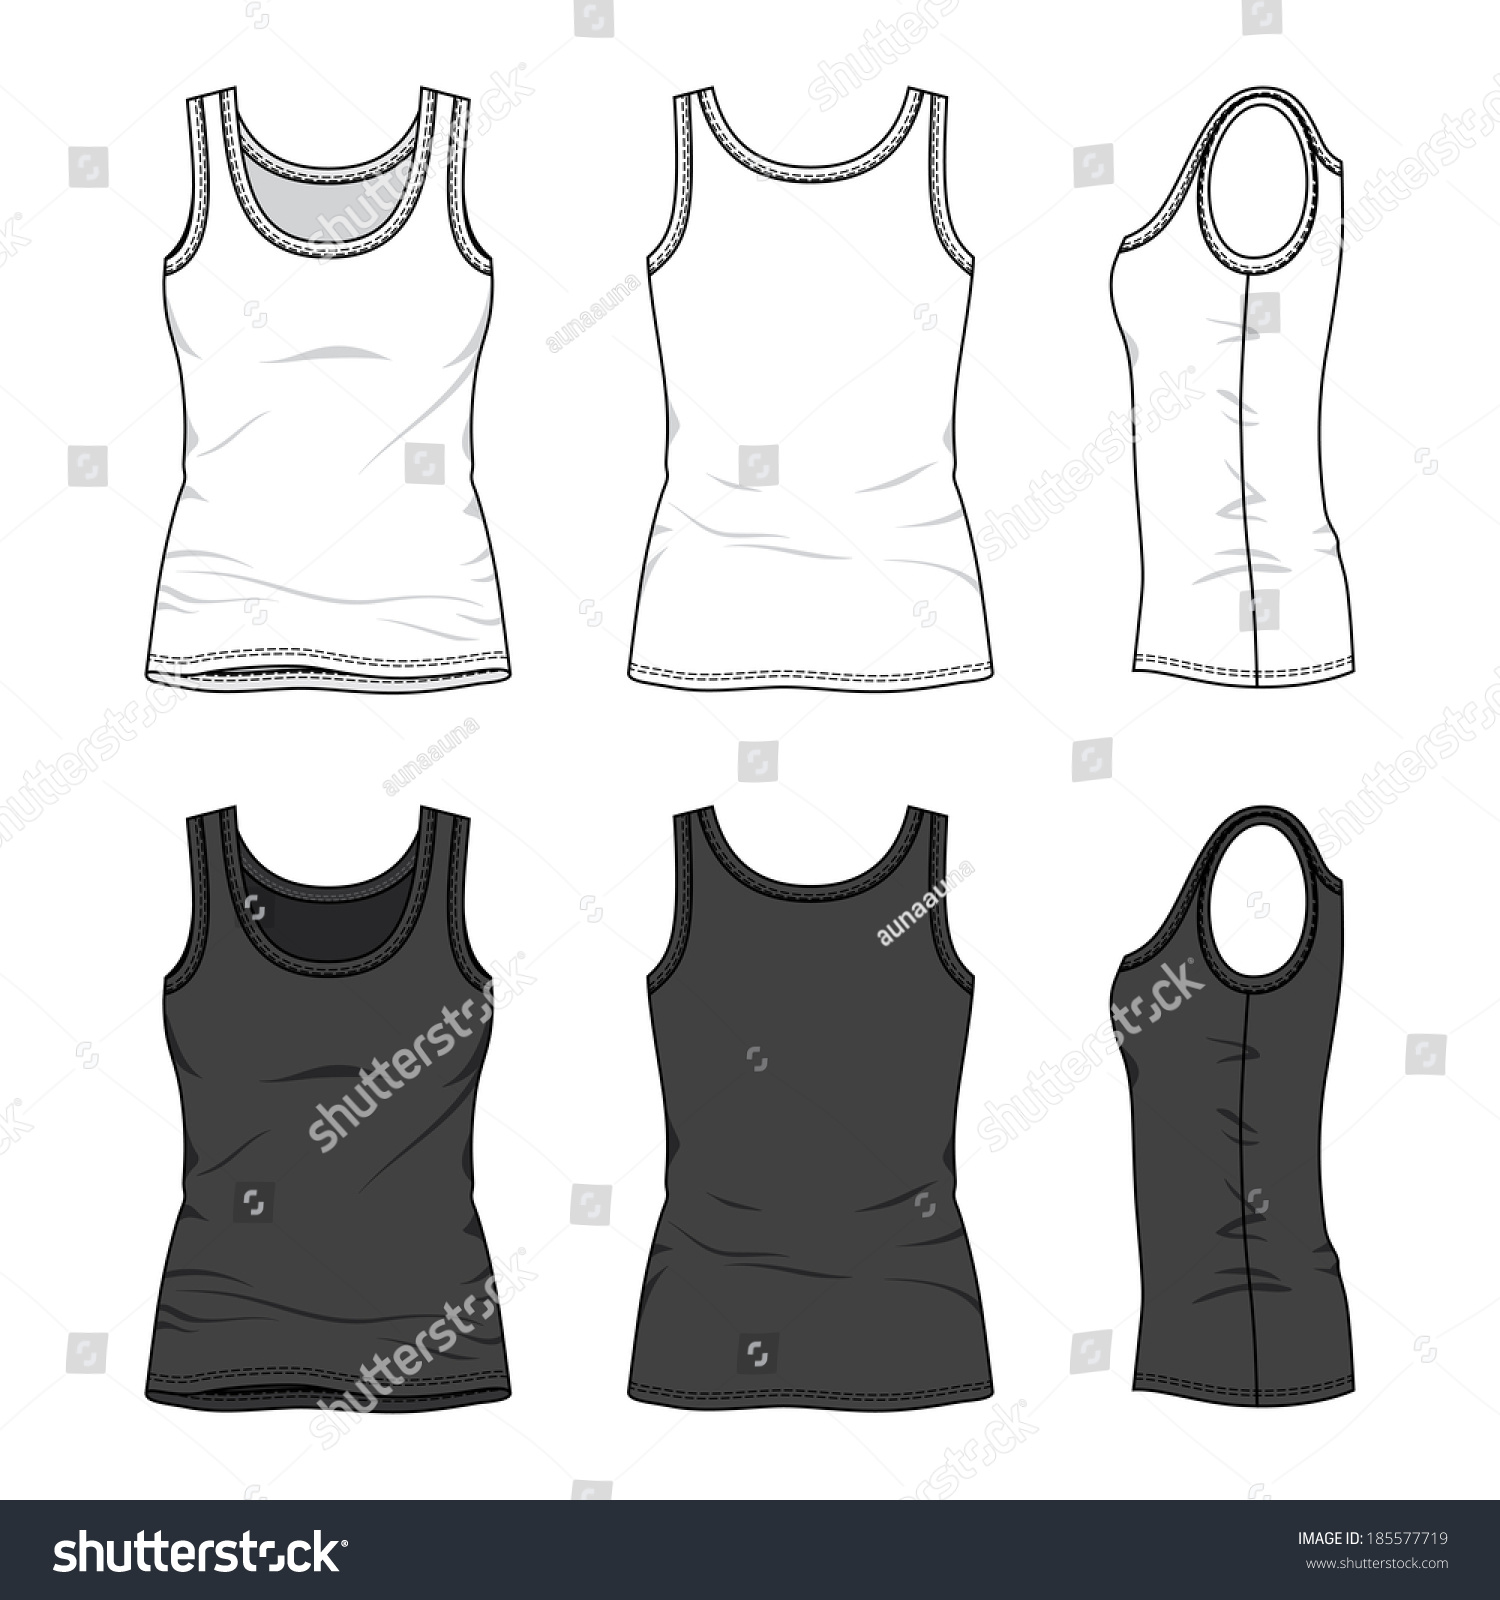 Woman Outline Front And Back | www.imgkid.com - The Image ...